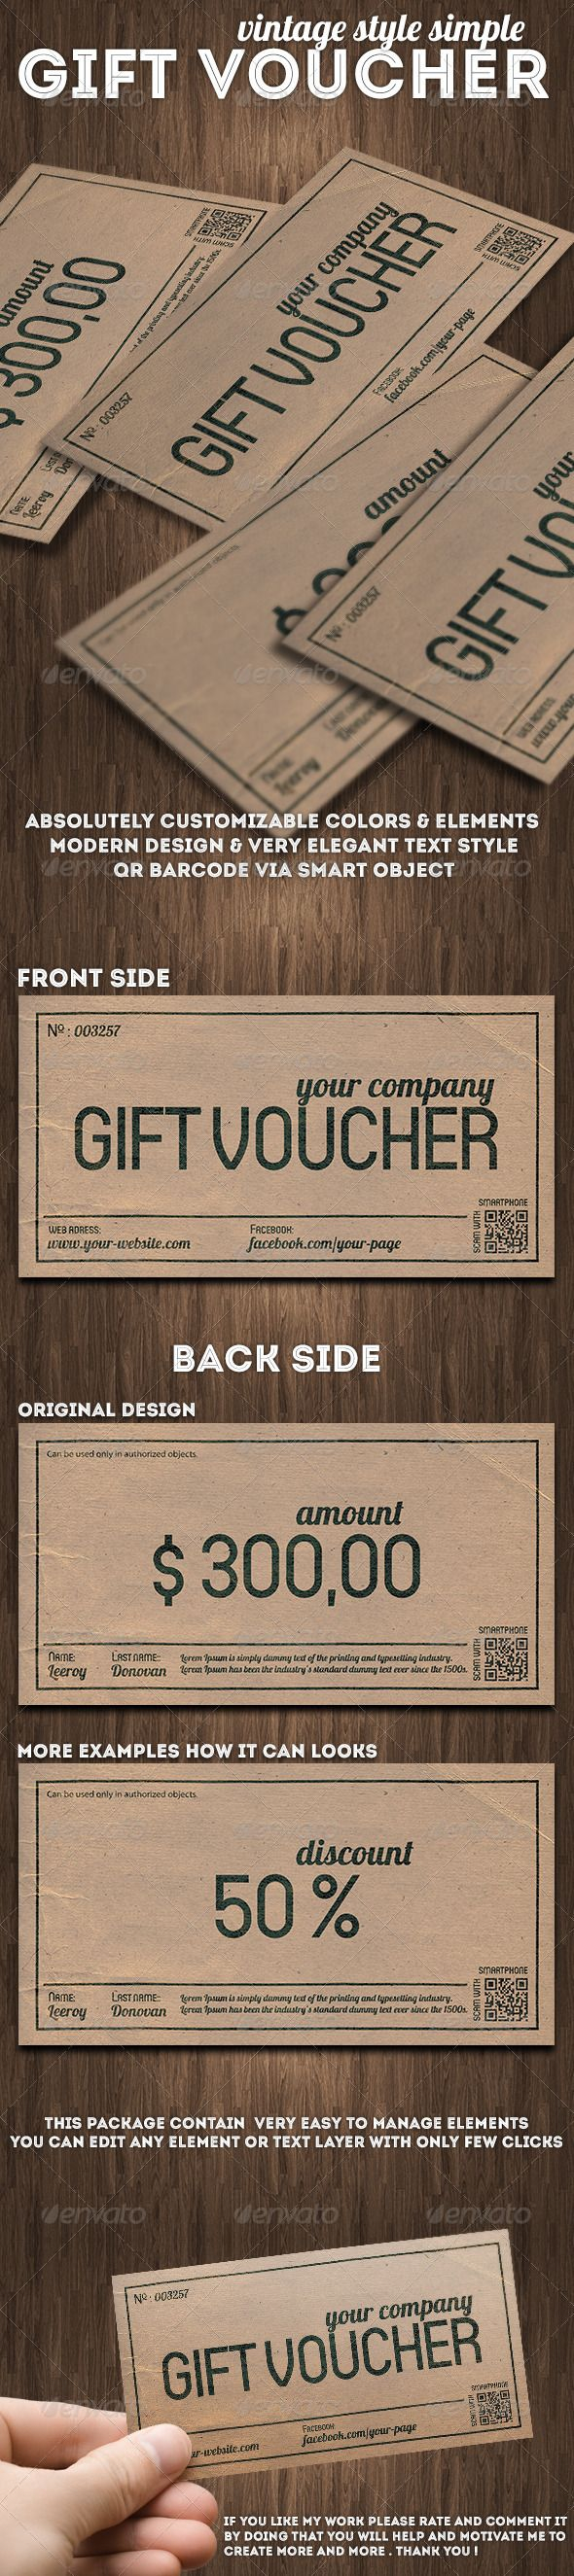 Vintage Style Gift Voucher or Discount Coupon | Psd templates ...